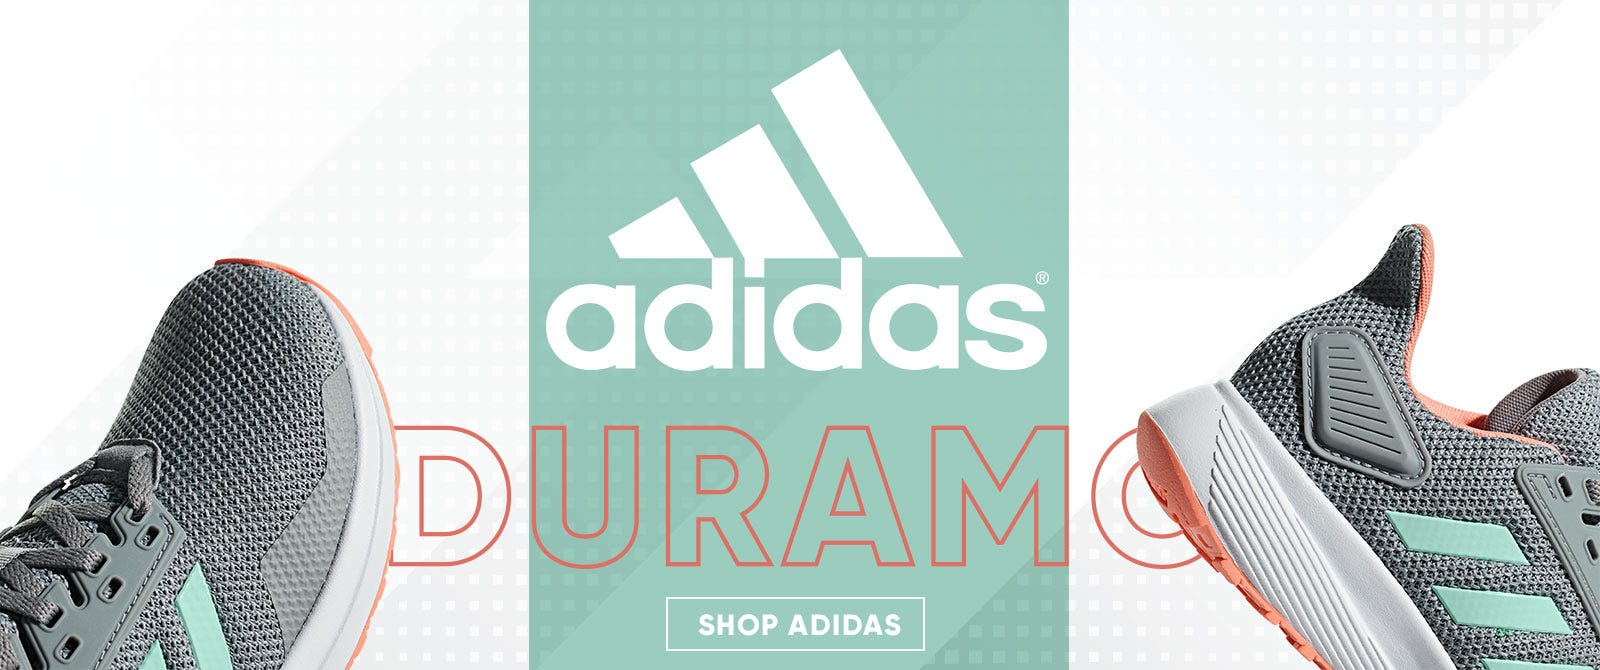 Shop Adidas online or in-store